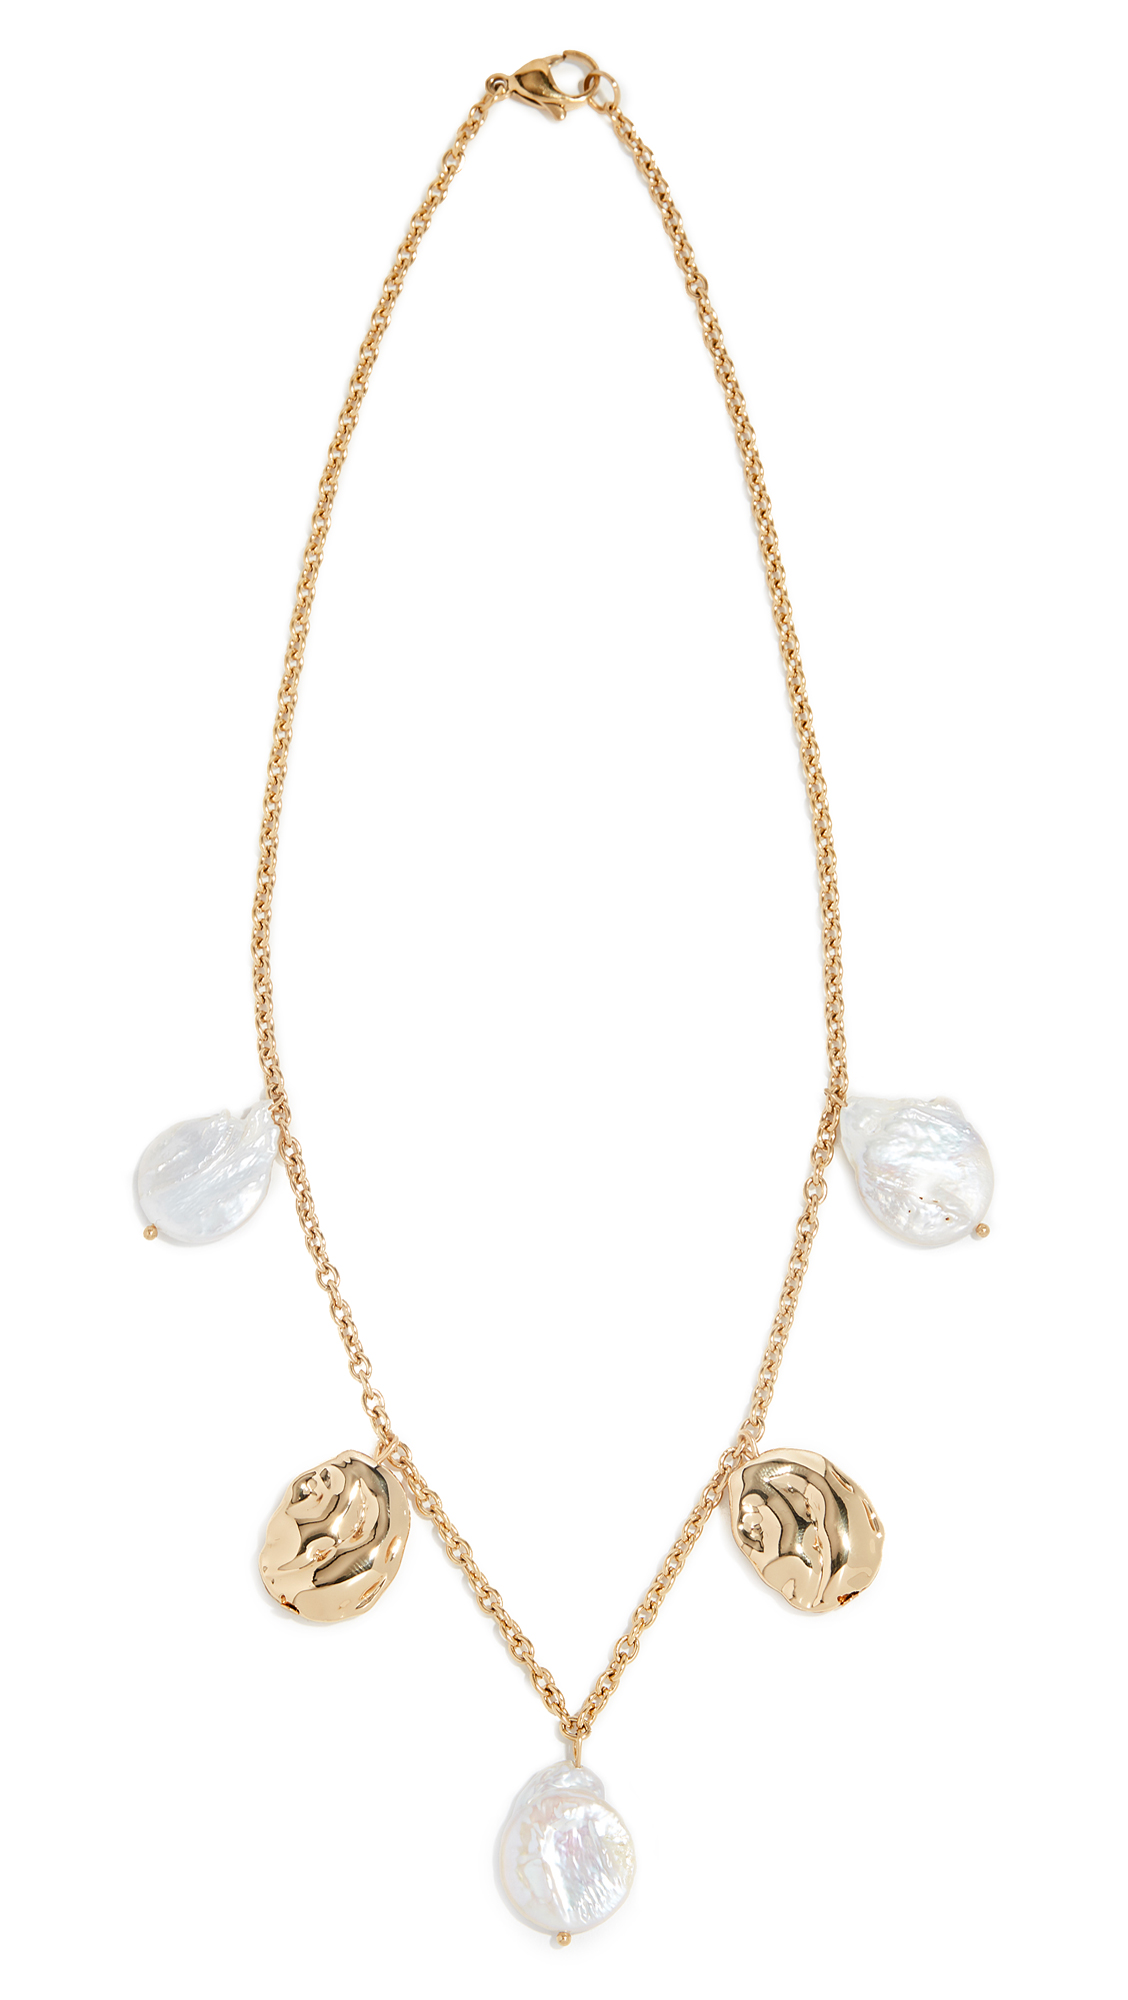 RELIQUIA Genius Necklace in Yellow Gold/Pearl